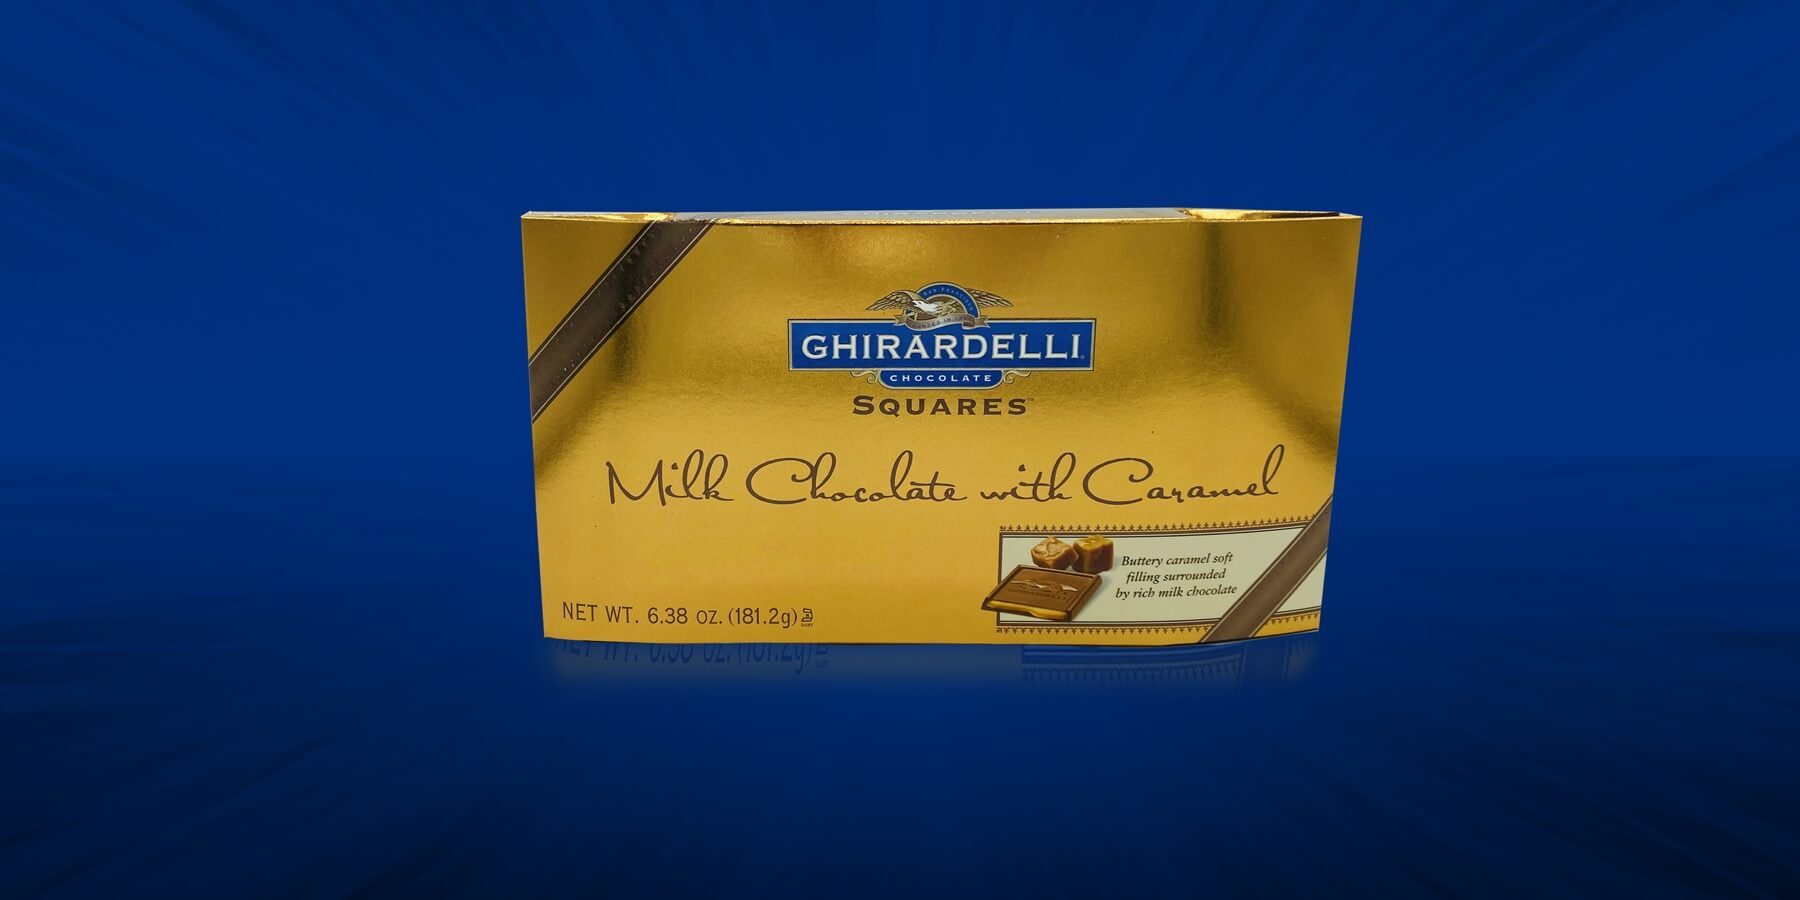 Spectrum Packaging Ghirardelli 3D Packaging on Blue Background